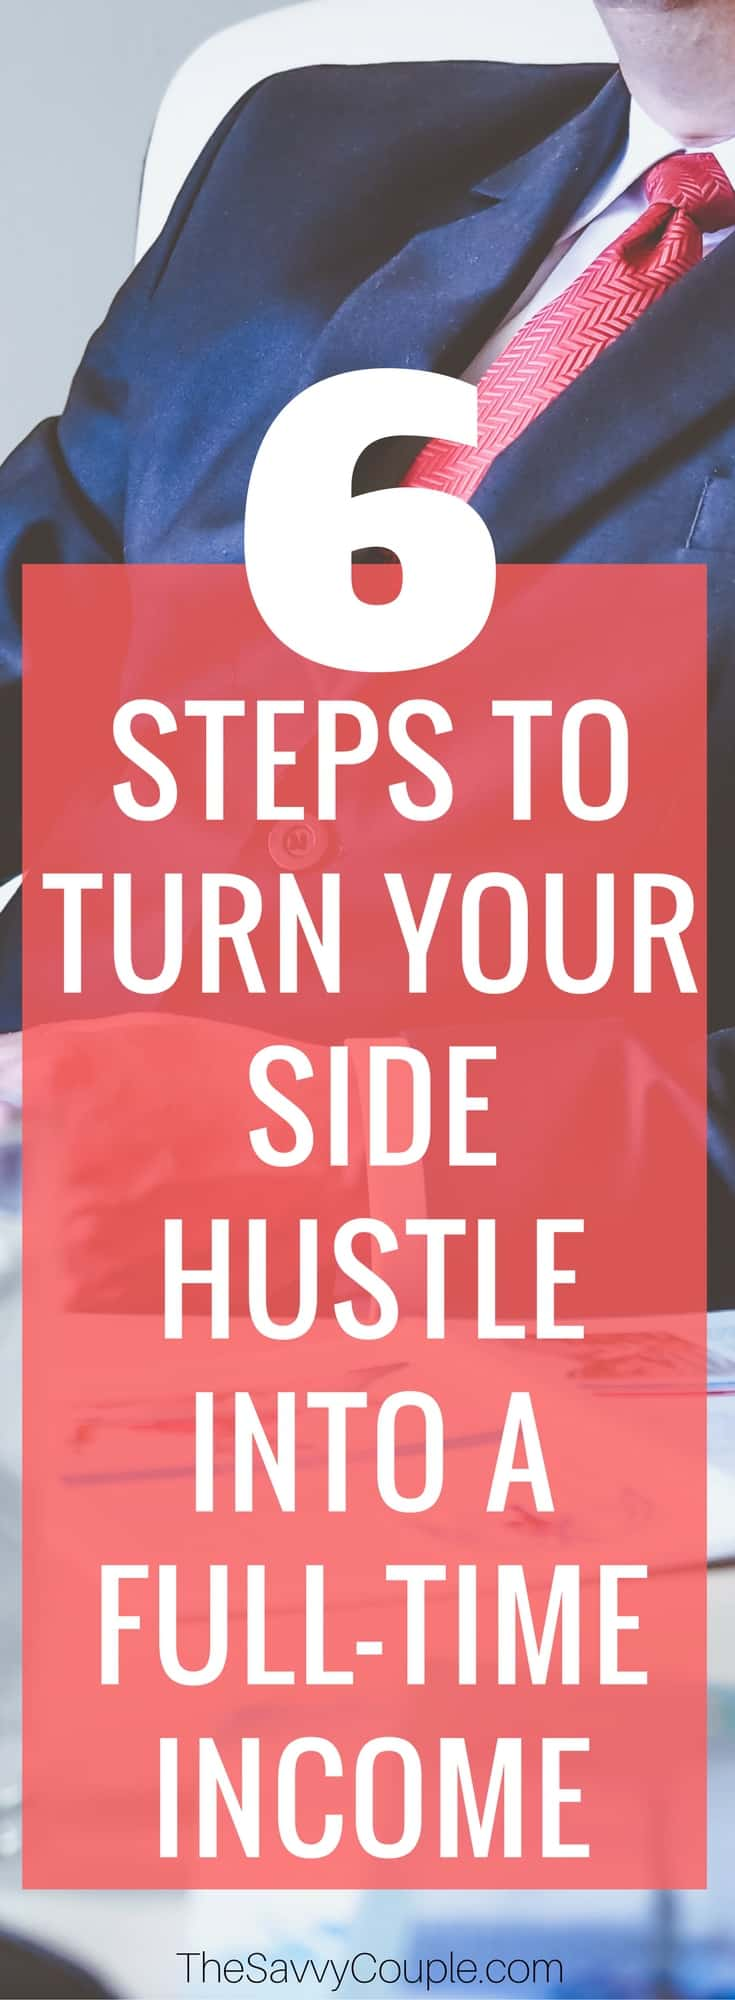 Side hustle, part-time business, your daydream...call it whatever you will, if you want to start calling it your full-time business, this article is for you! Learn how these 6 easy steps will help turn your side hustle into a full-time income. Blog | Side Hustle | Income | Work from home | business | how to start a blog | extra income | Make money online